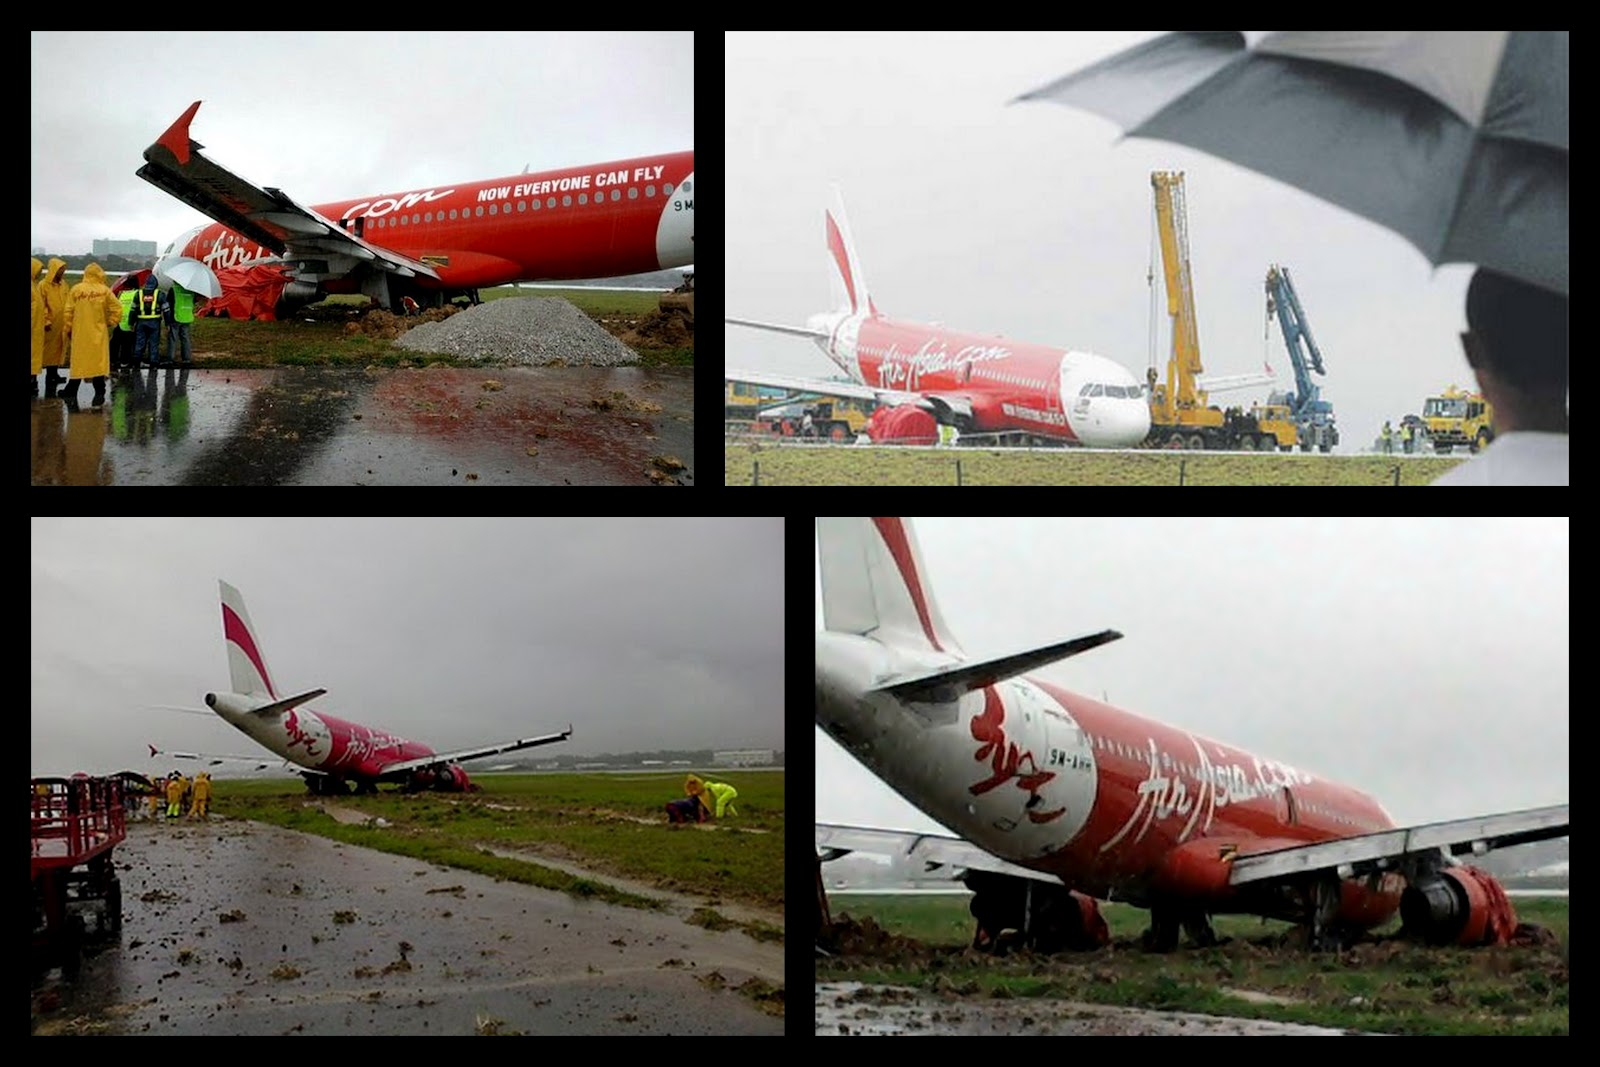 malaysian airline vs airasia an analysis Follow cbs news' coverage of the disappearance of malaysia airlines flight 370 over southeast asia, including news, pictures, videos, and more.